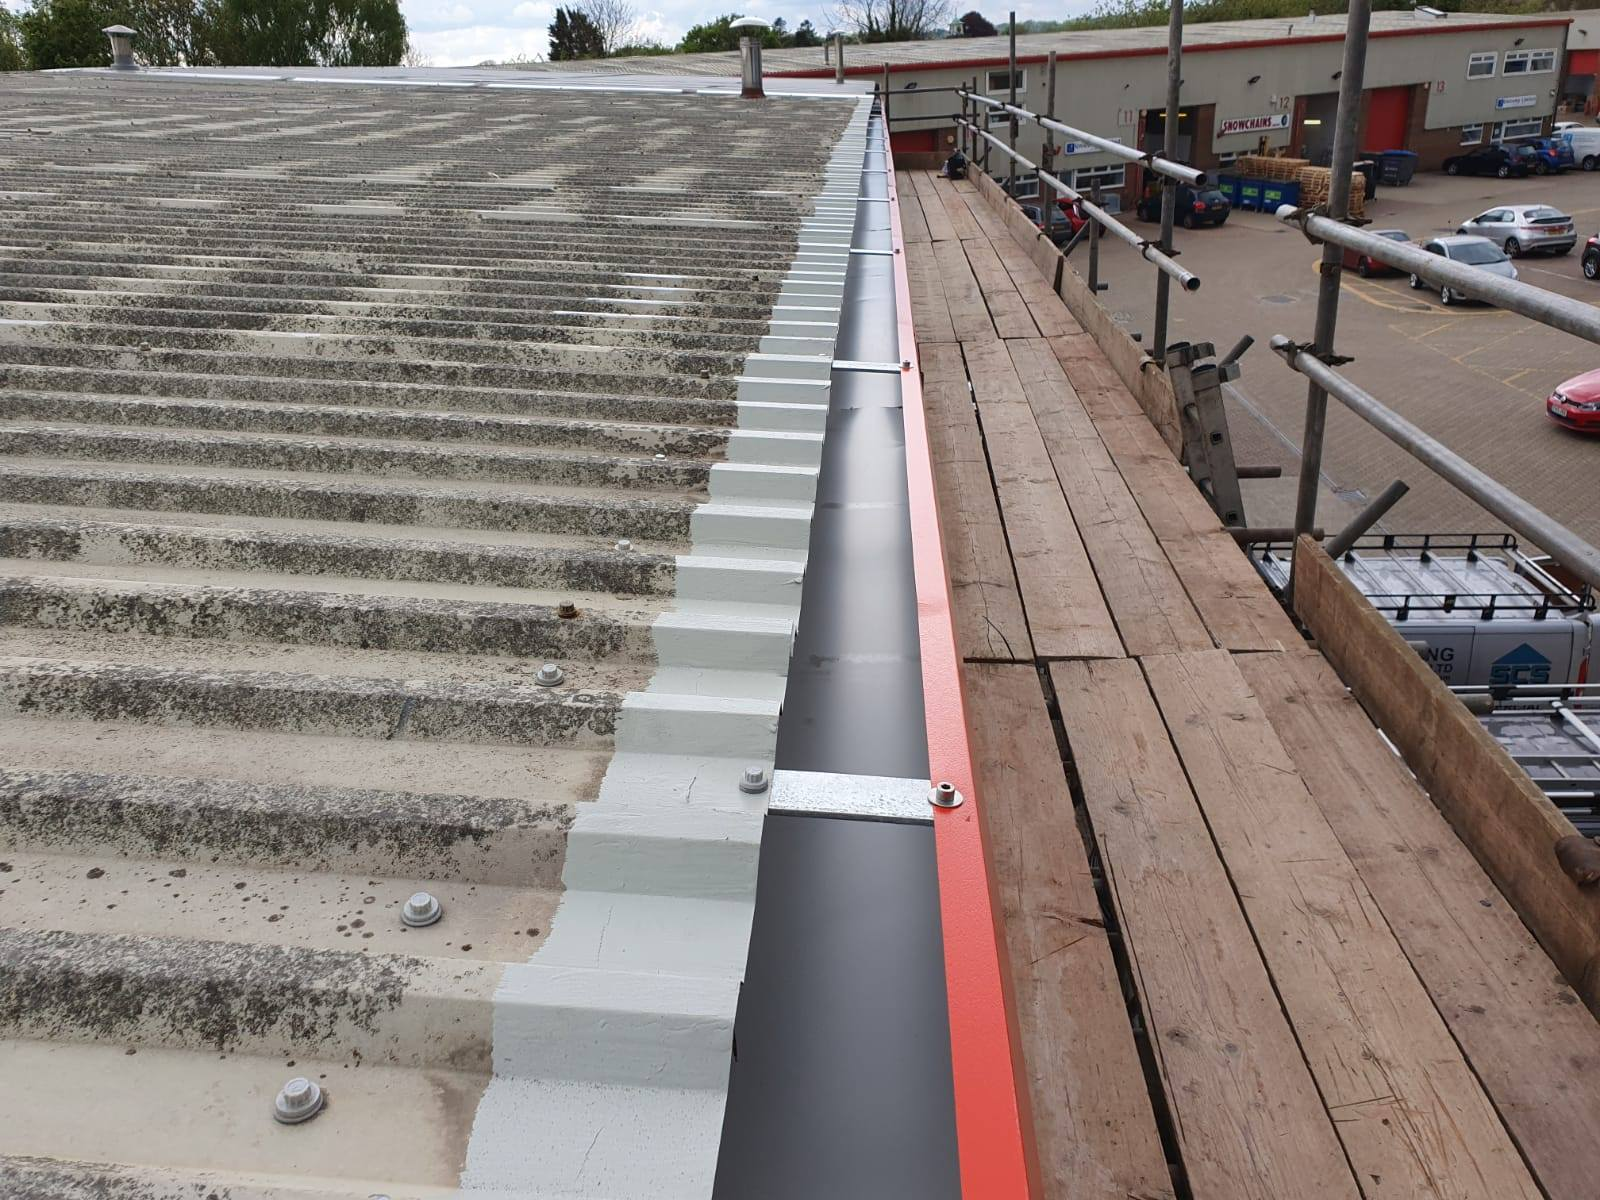 Repairs to a warehouse gutter in Borough Green, Kent